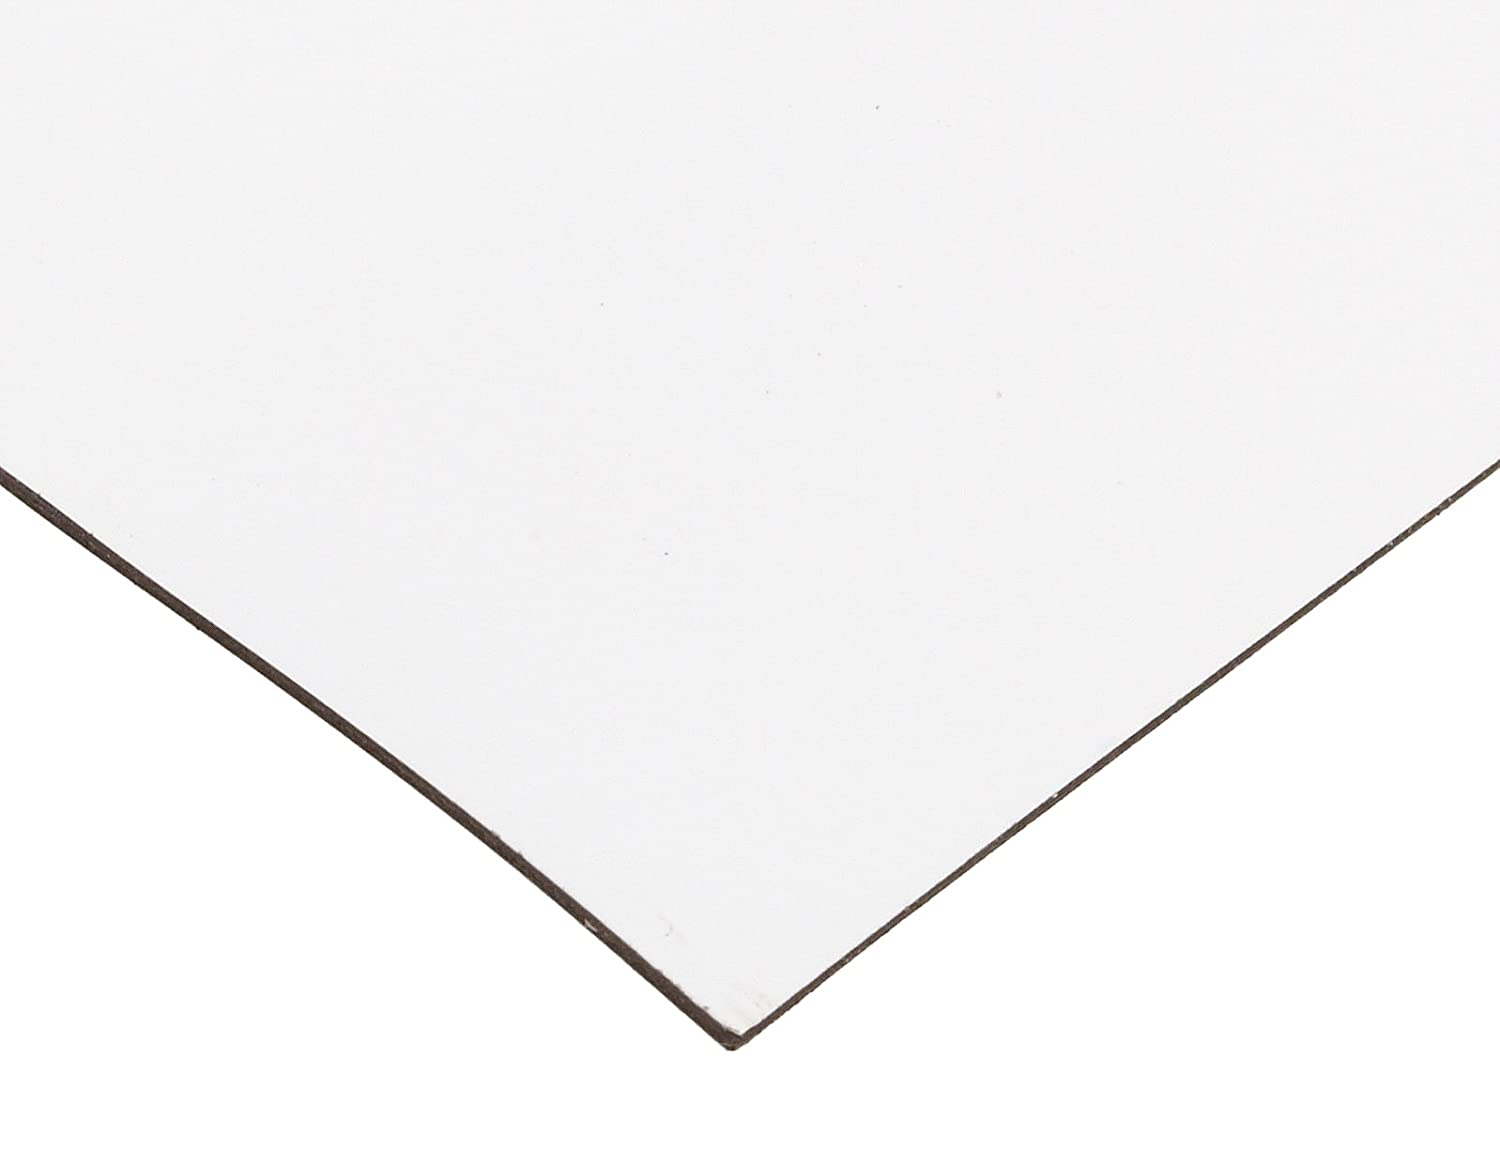 Master Magnetics Flexible Magnet Sheet with White Vinyl, Sign Blank - 1/32' thick x 24' wide x 48' long (1 sheet rolled inside tube) Sign Blank - 1/32 thick x 24 wide x 48 long (1 sheet rolled inside tube) Magnet Source 07060